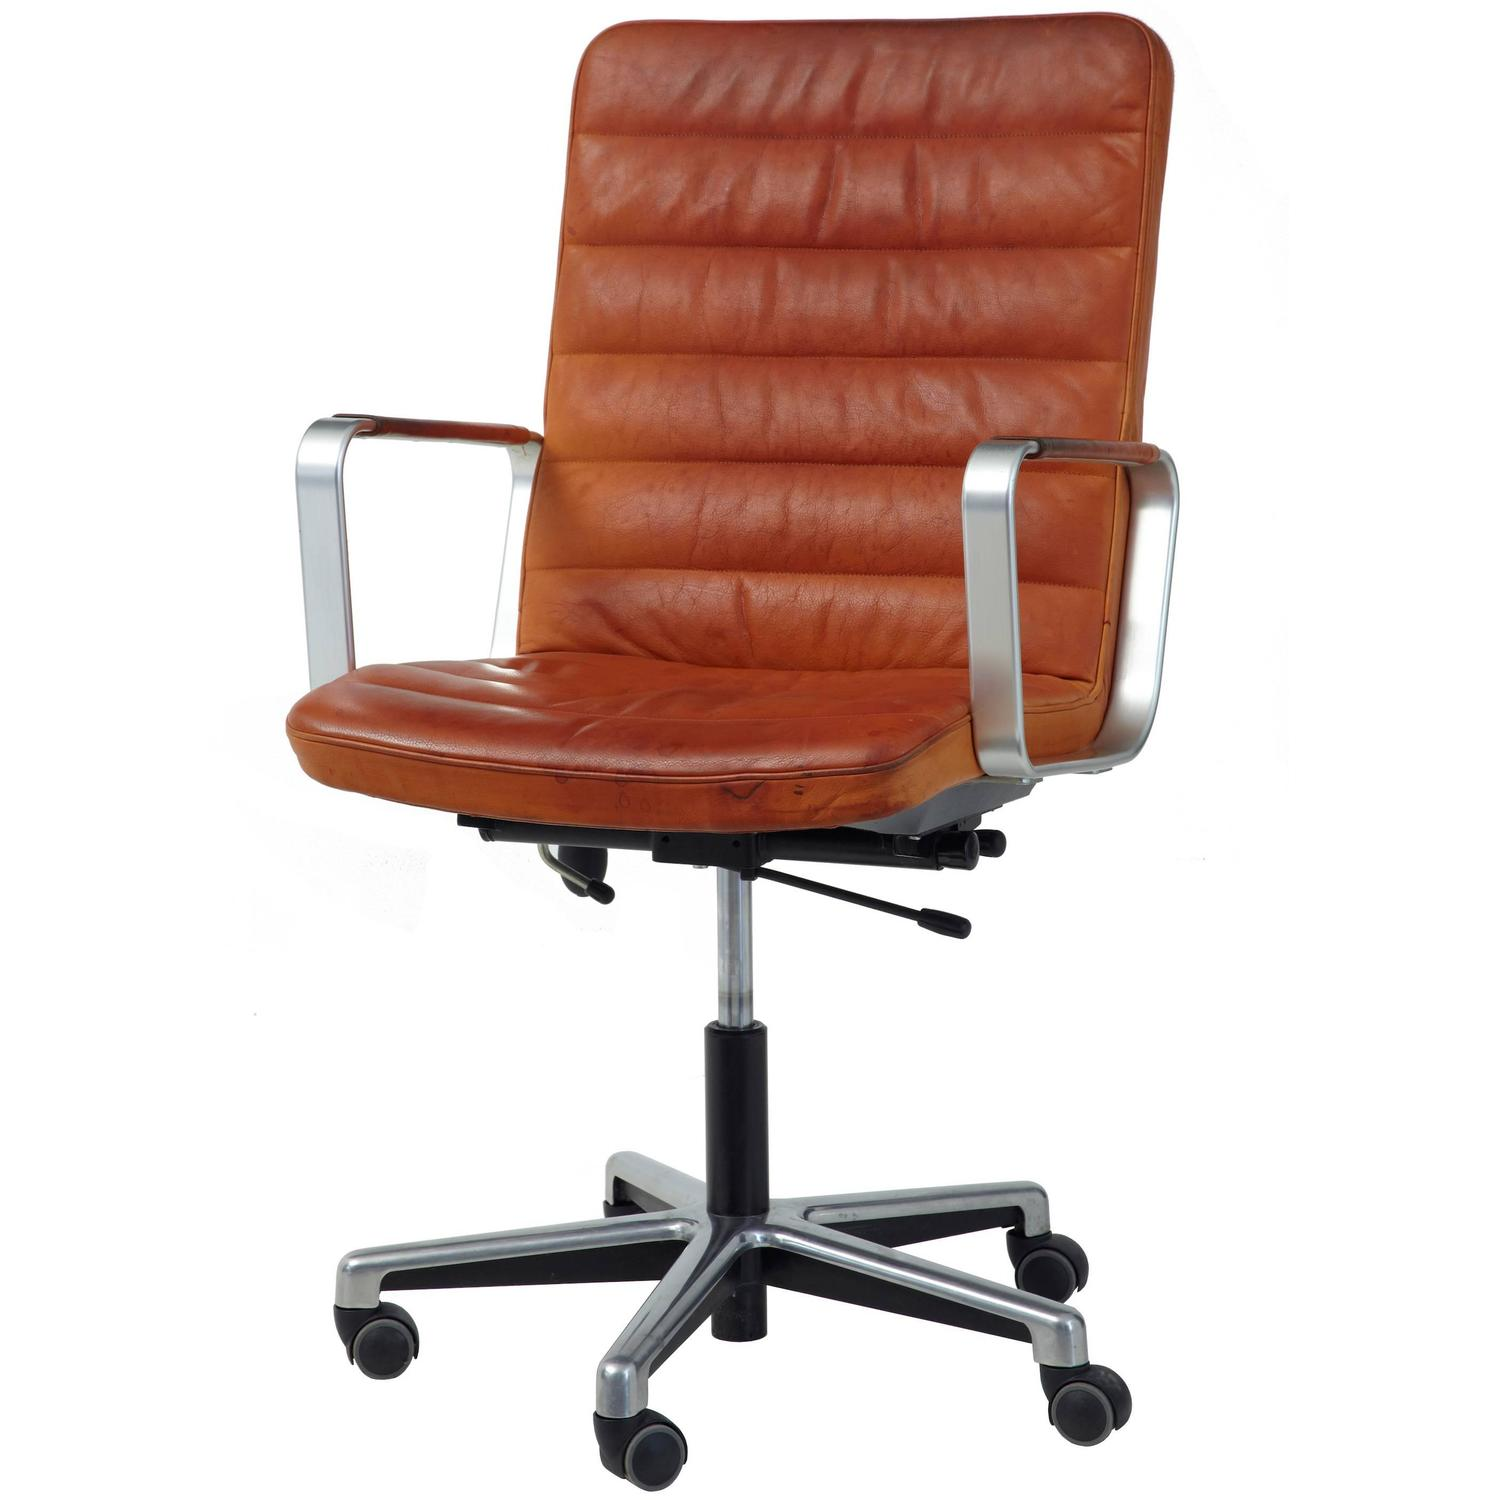 modern leather and chrome office chair by joc for sale at 1stdibs